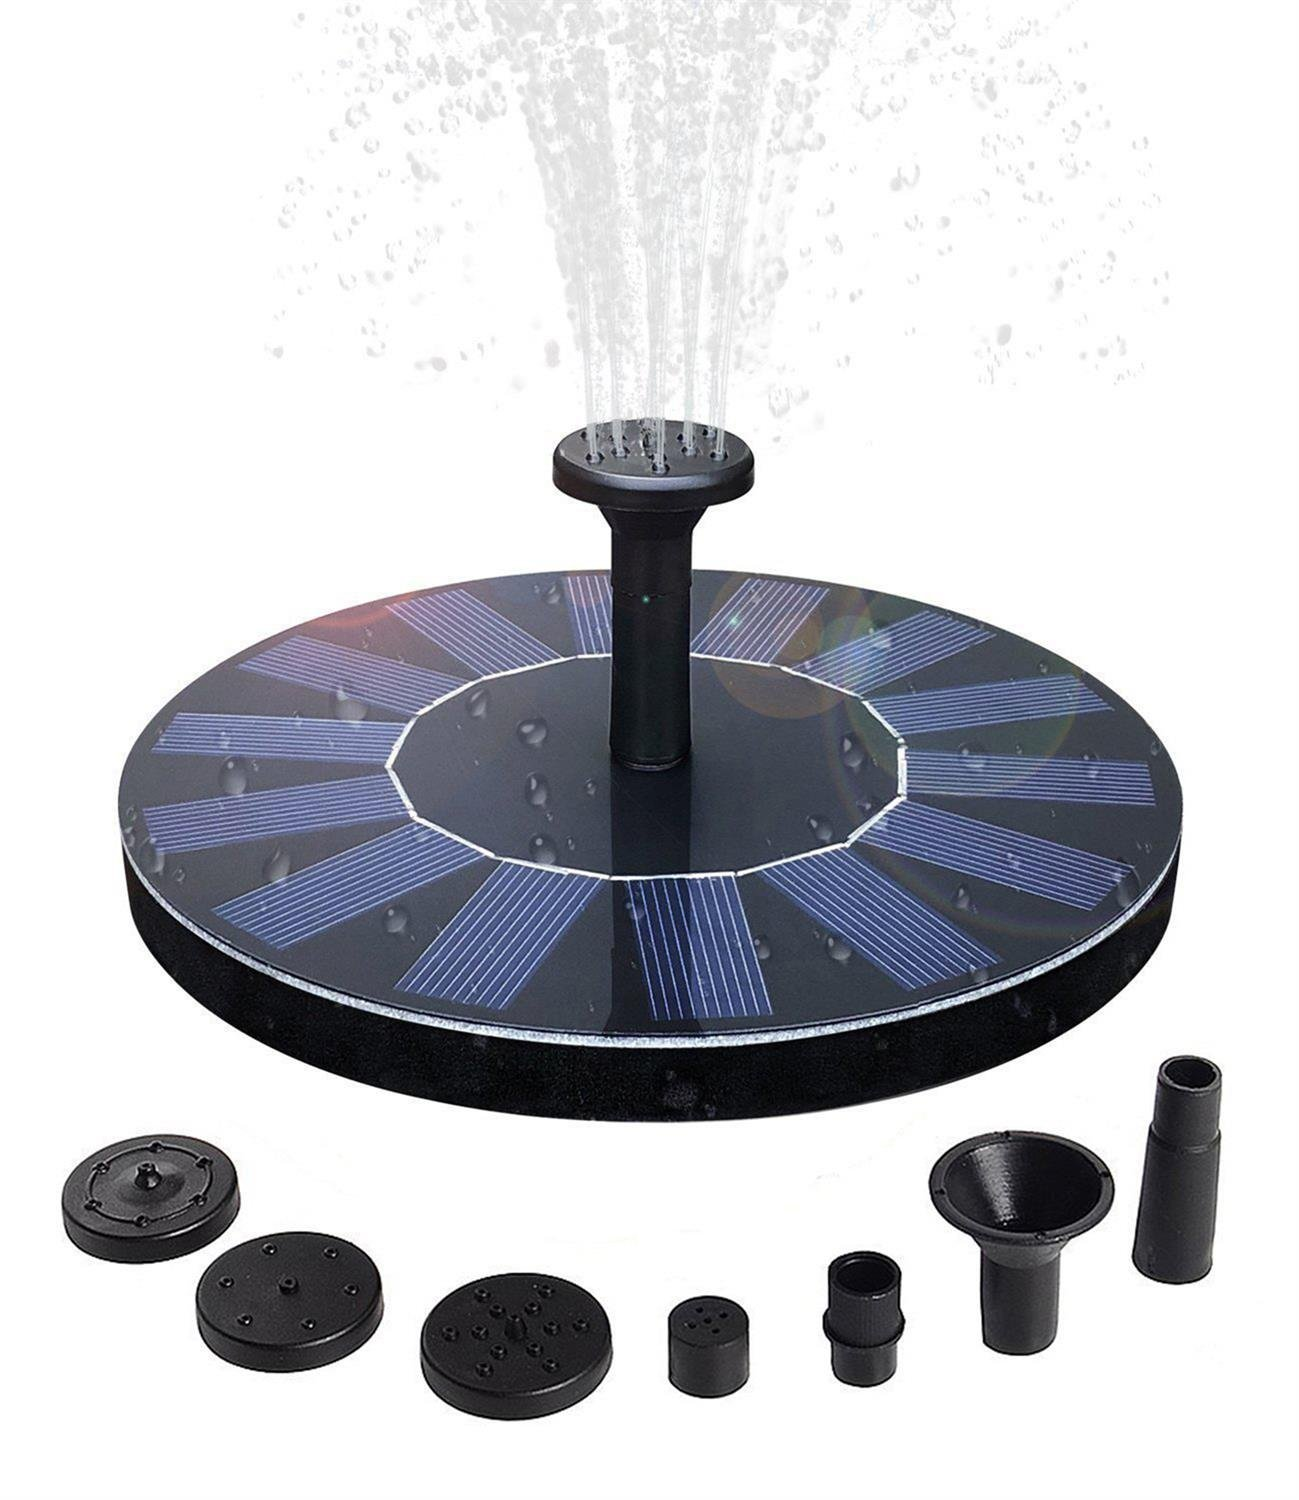 QueenA Solar Fountain Pump,Solar Powered Birdbath Fountain,1.4w Portable Solar Powered Bird Bath Fountain Submersible Free Standing Outdoor Fountain for Pond/Pool/Patio Garden